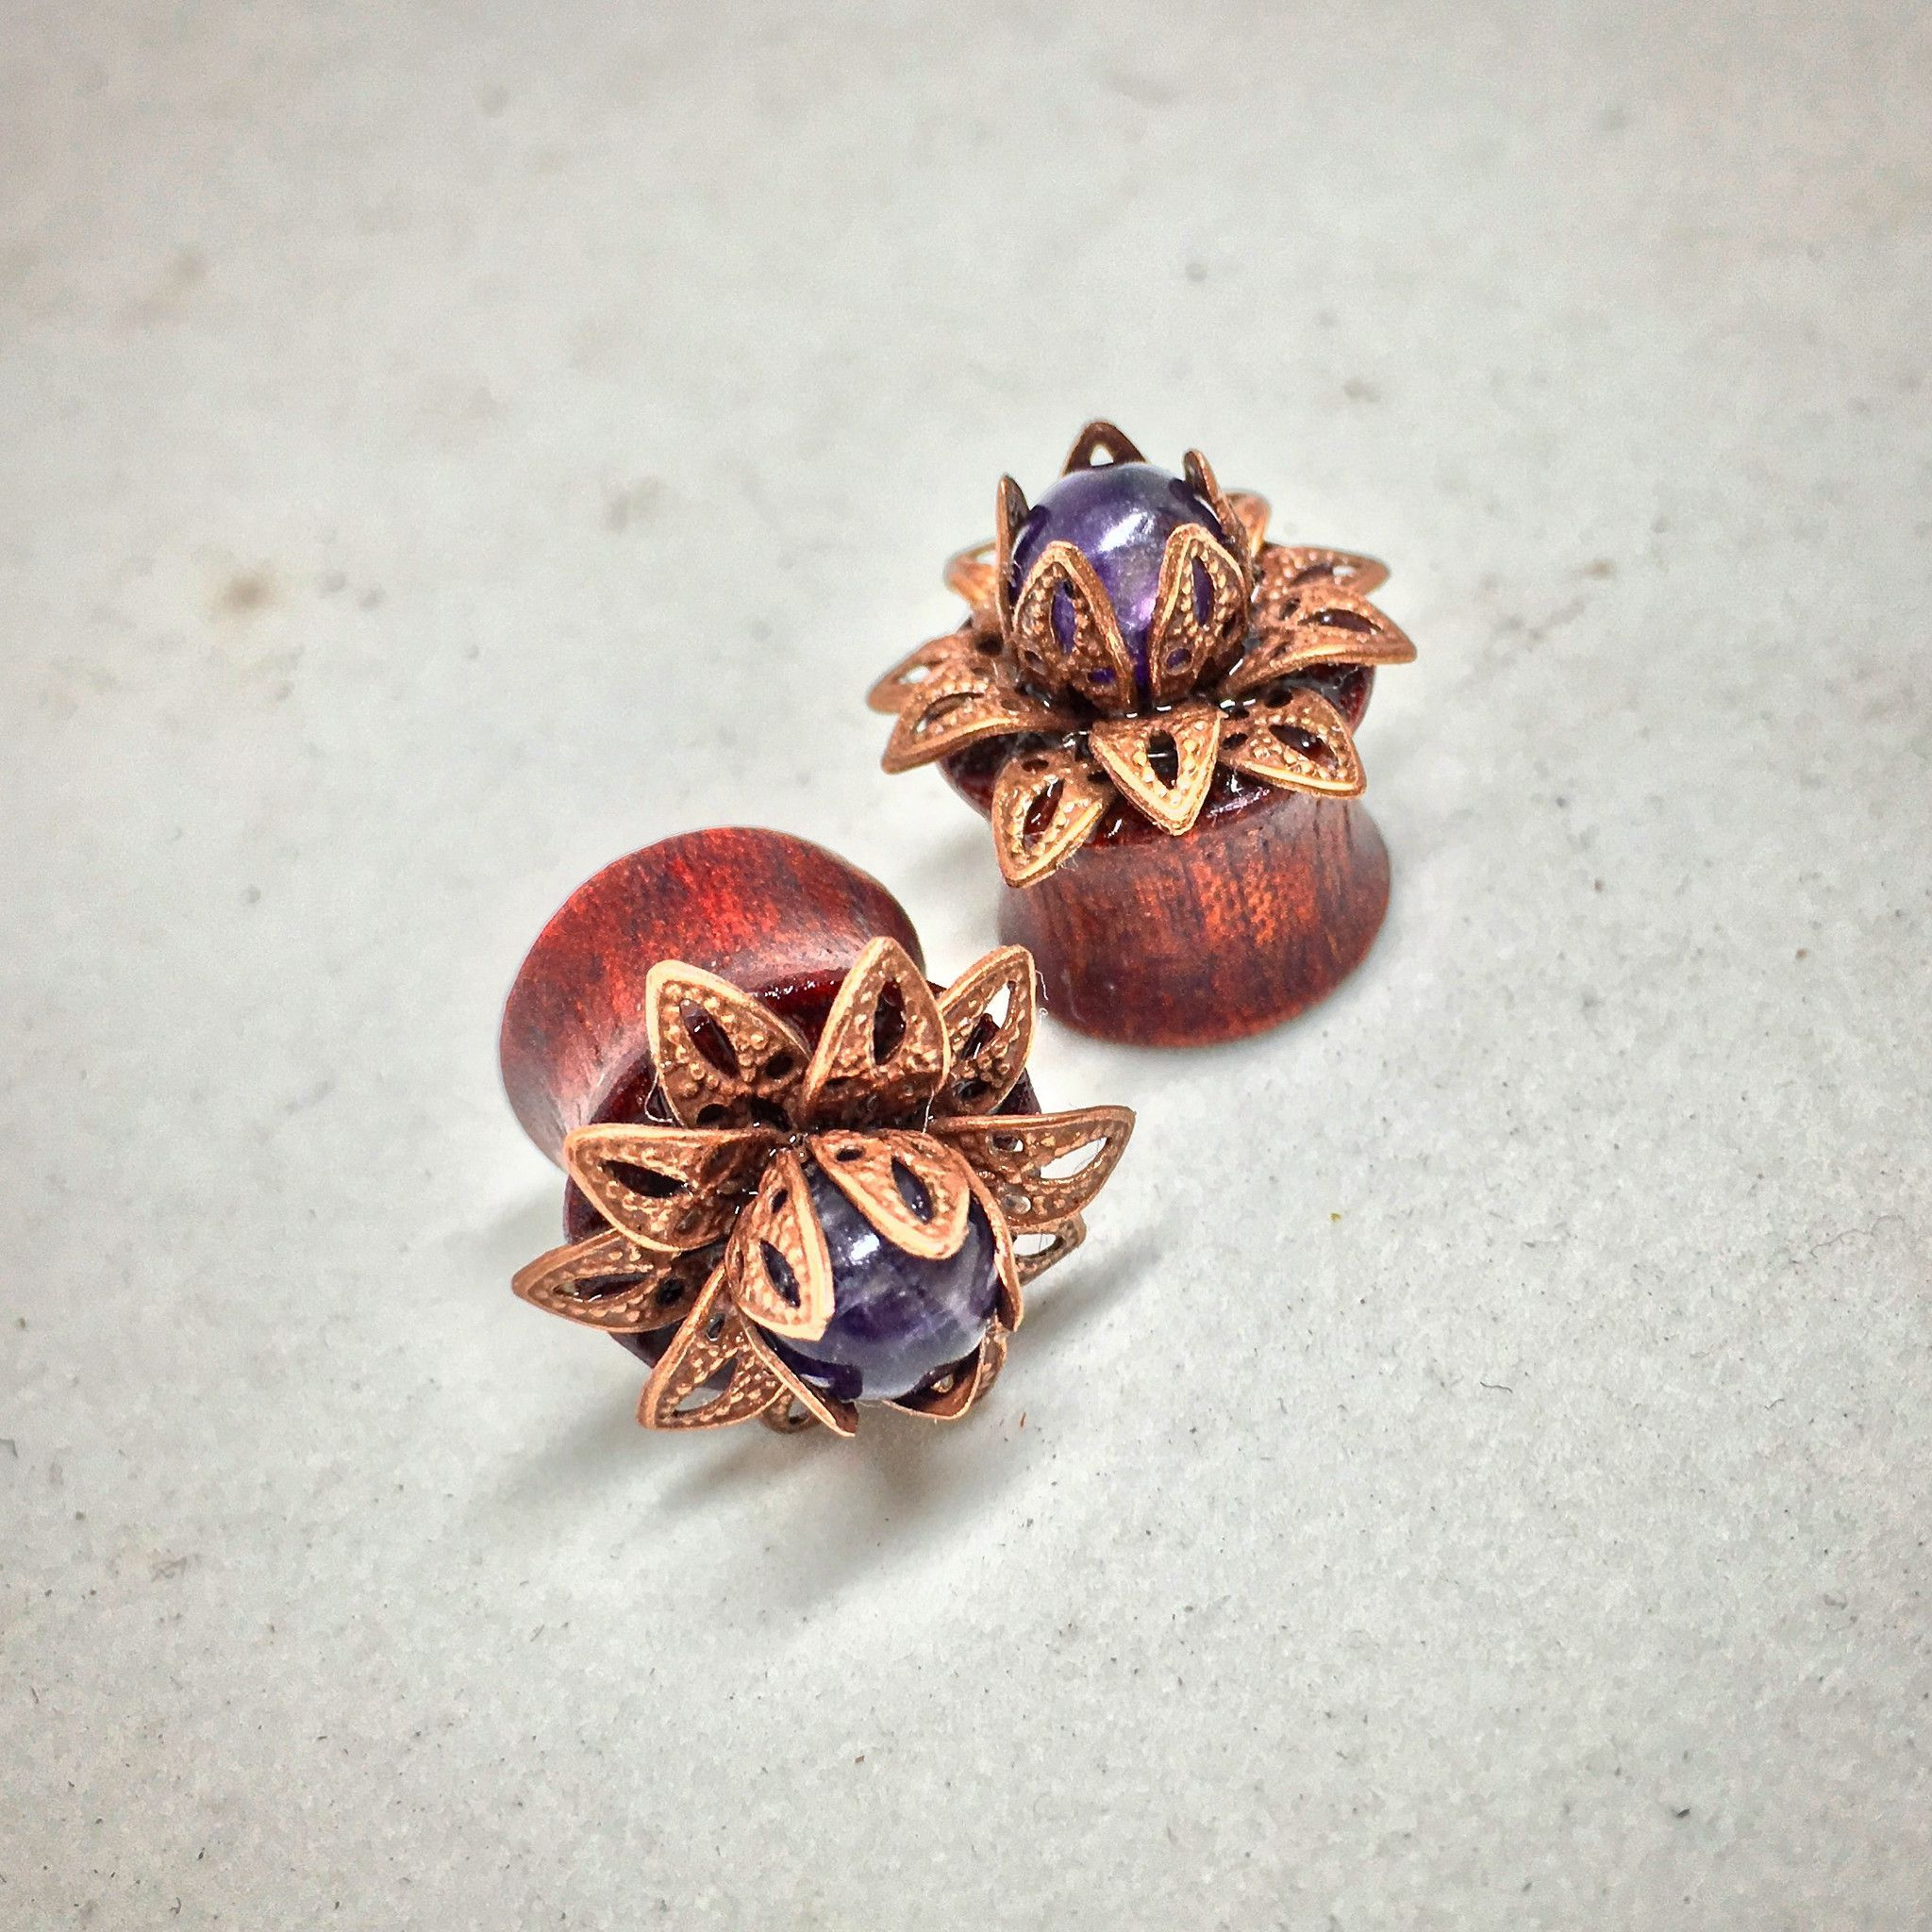 Bloodwood lotus flower plugs with amethyst stone for stretched ears bloodwood lotus flower plugs with amethyst stone for stretched ears sizes 00g10mm through 916 inch 14mm wooden plug gauges mightylinksfo